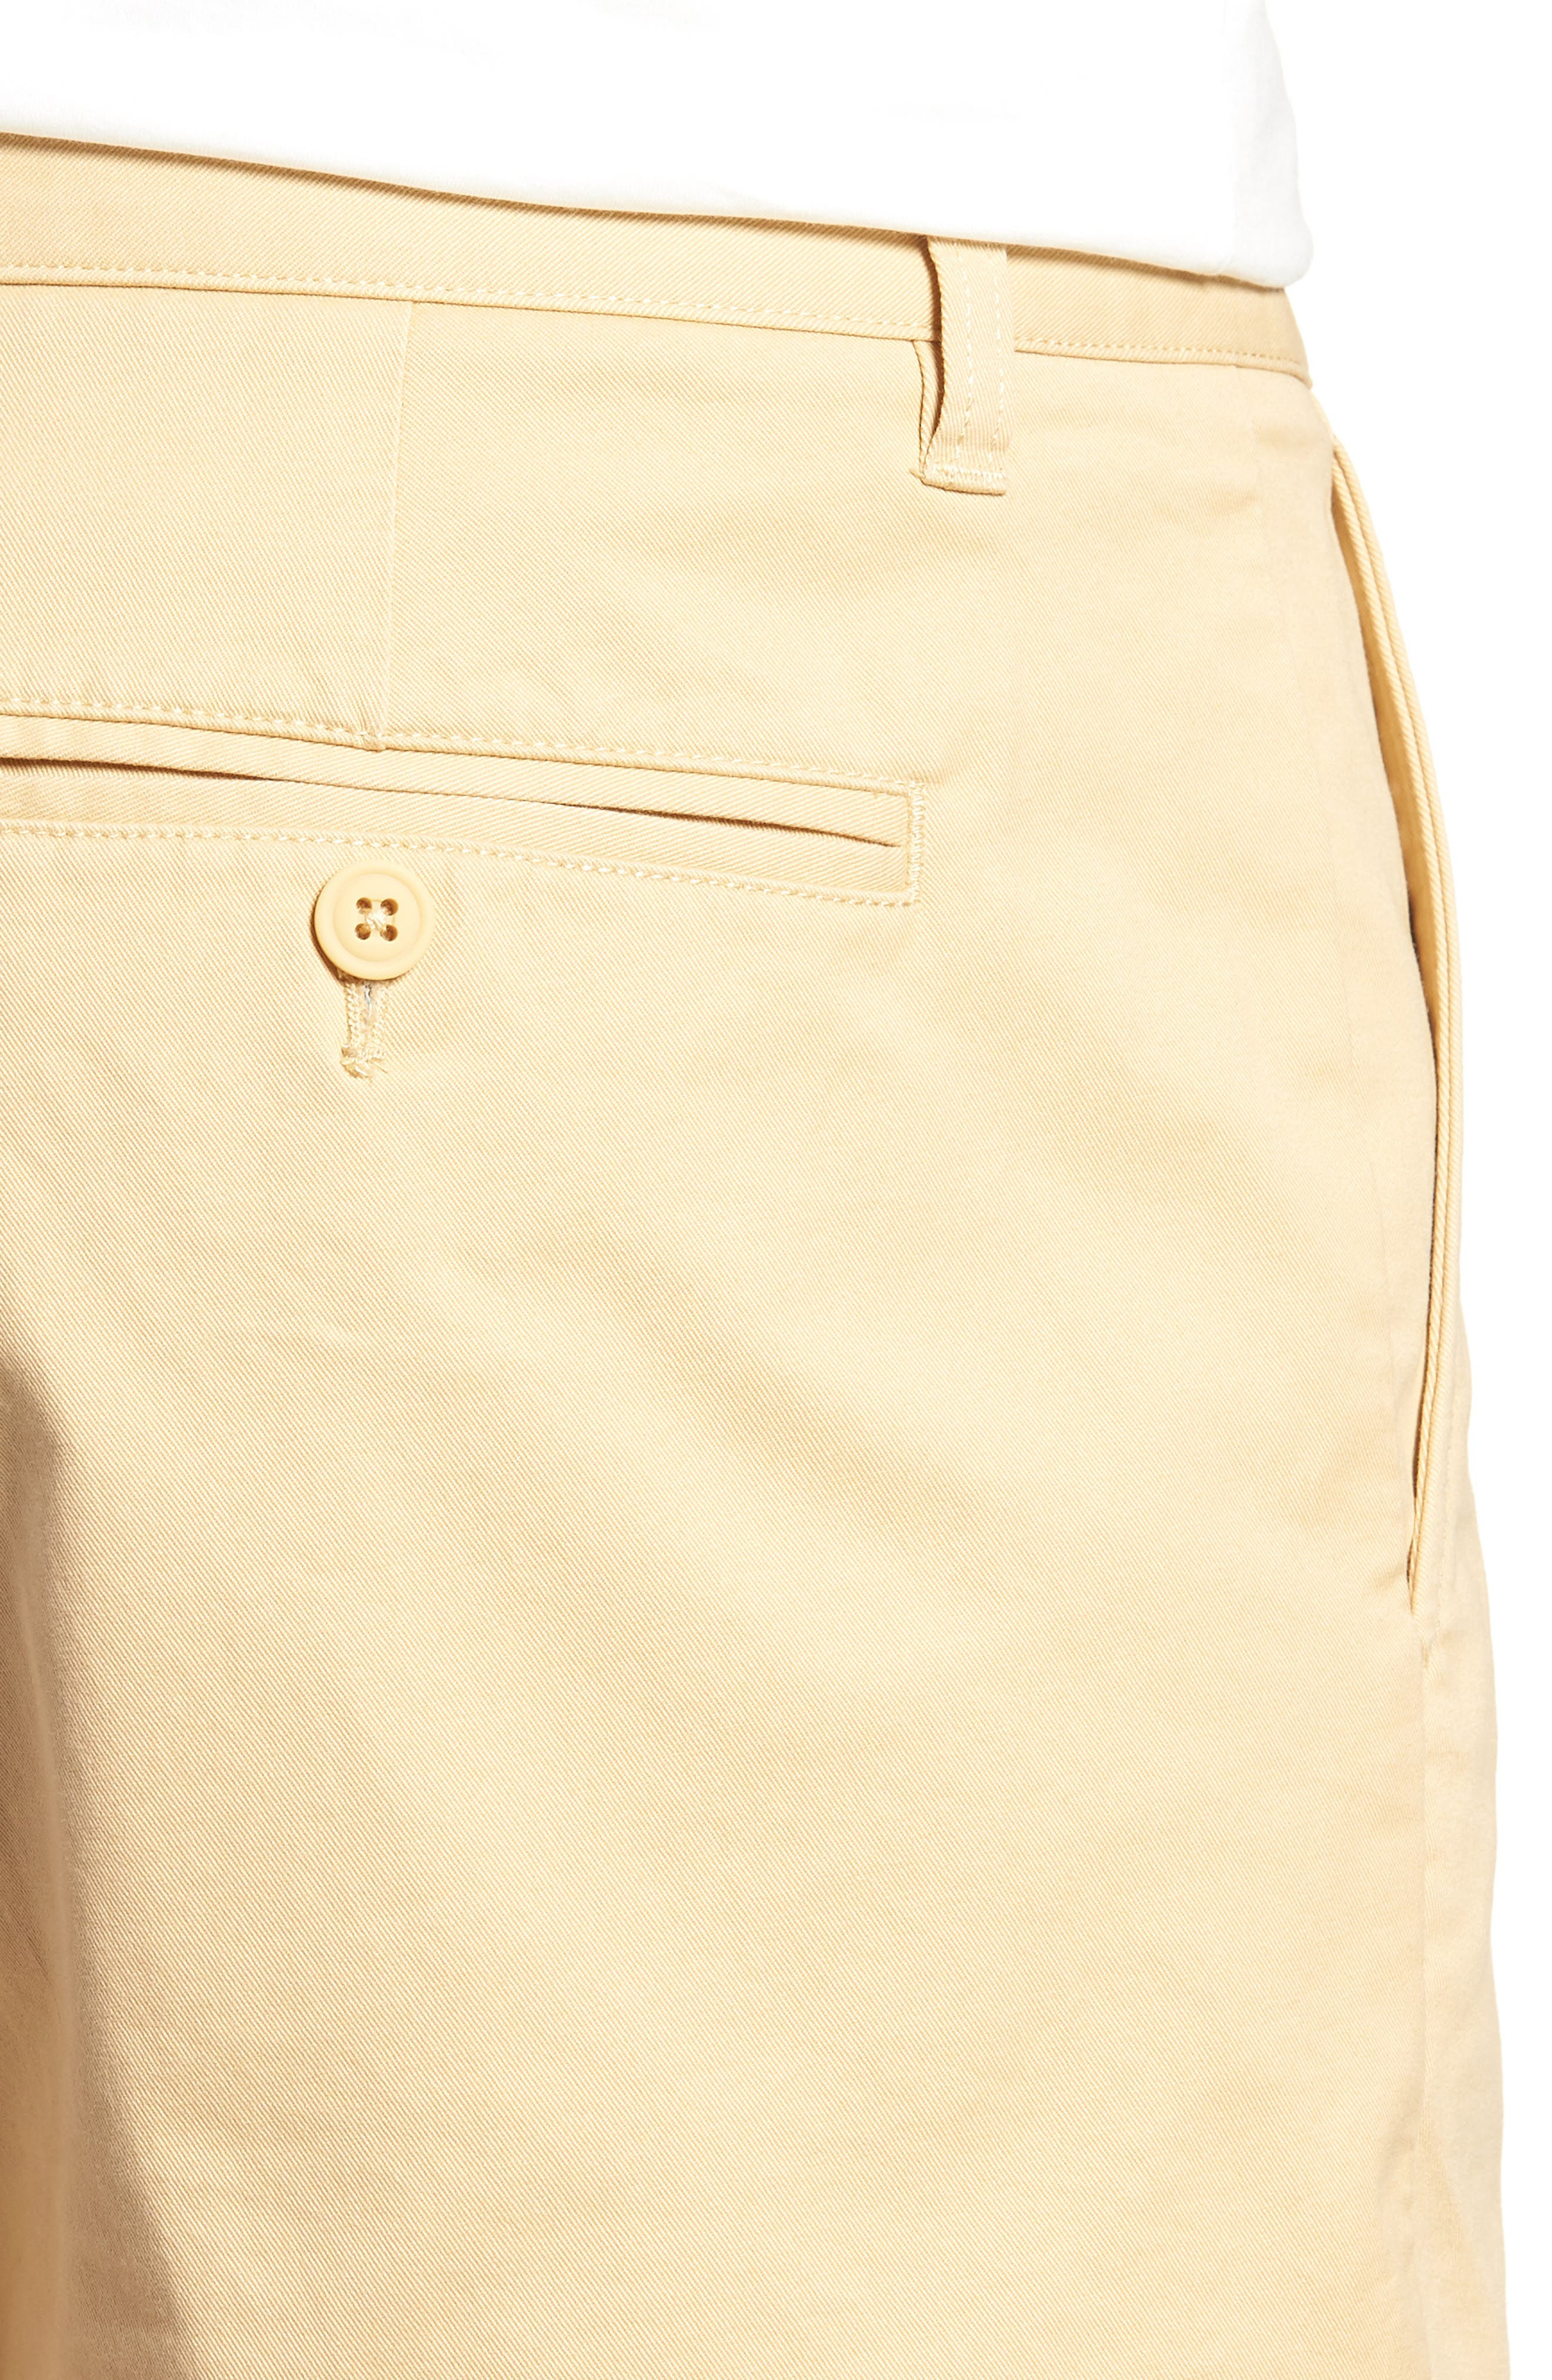 Stretch Chino 7-Inch Shorts,                             Alternate thumbnail 41, color,